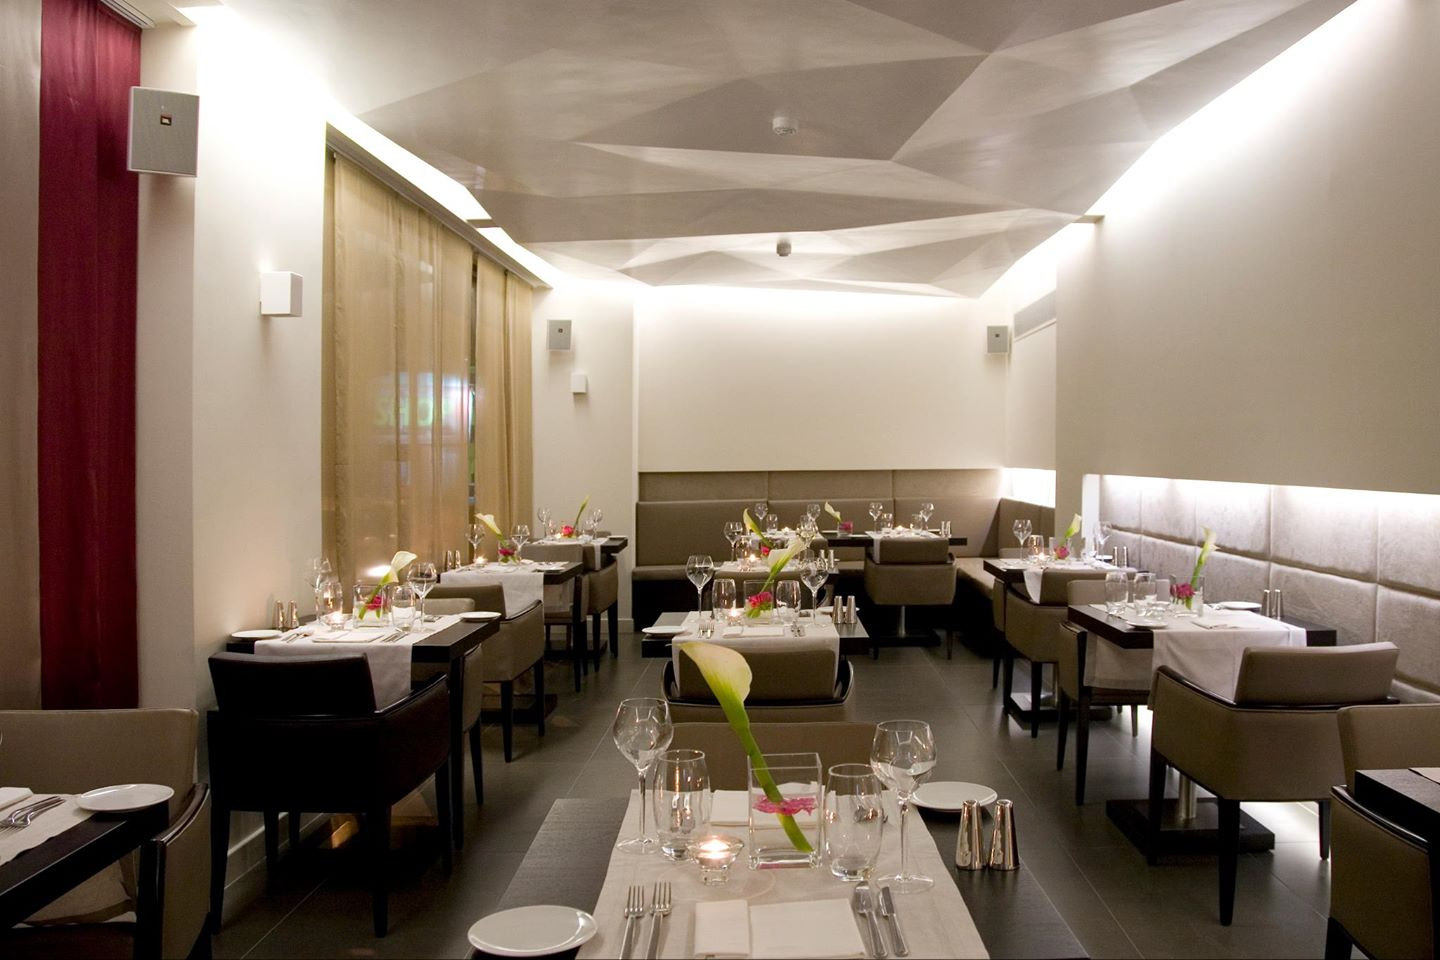 O&B Athens All Day Bar Restaurant Cover Image on XploreGreece